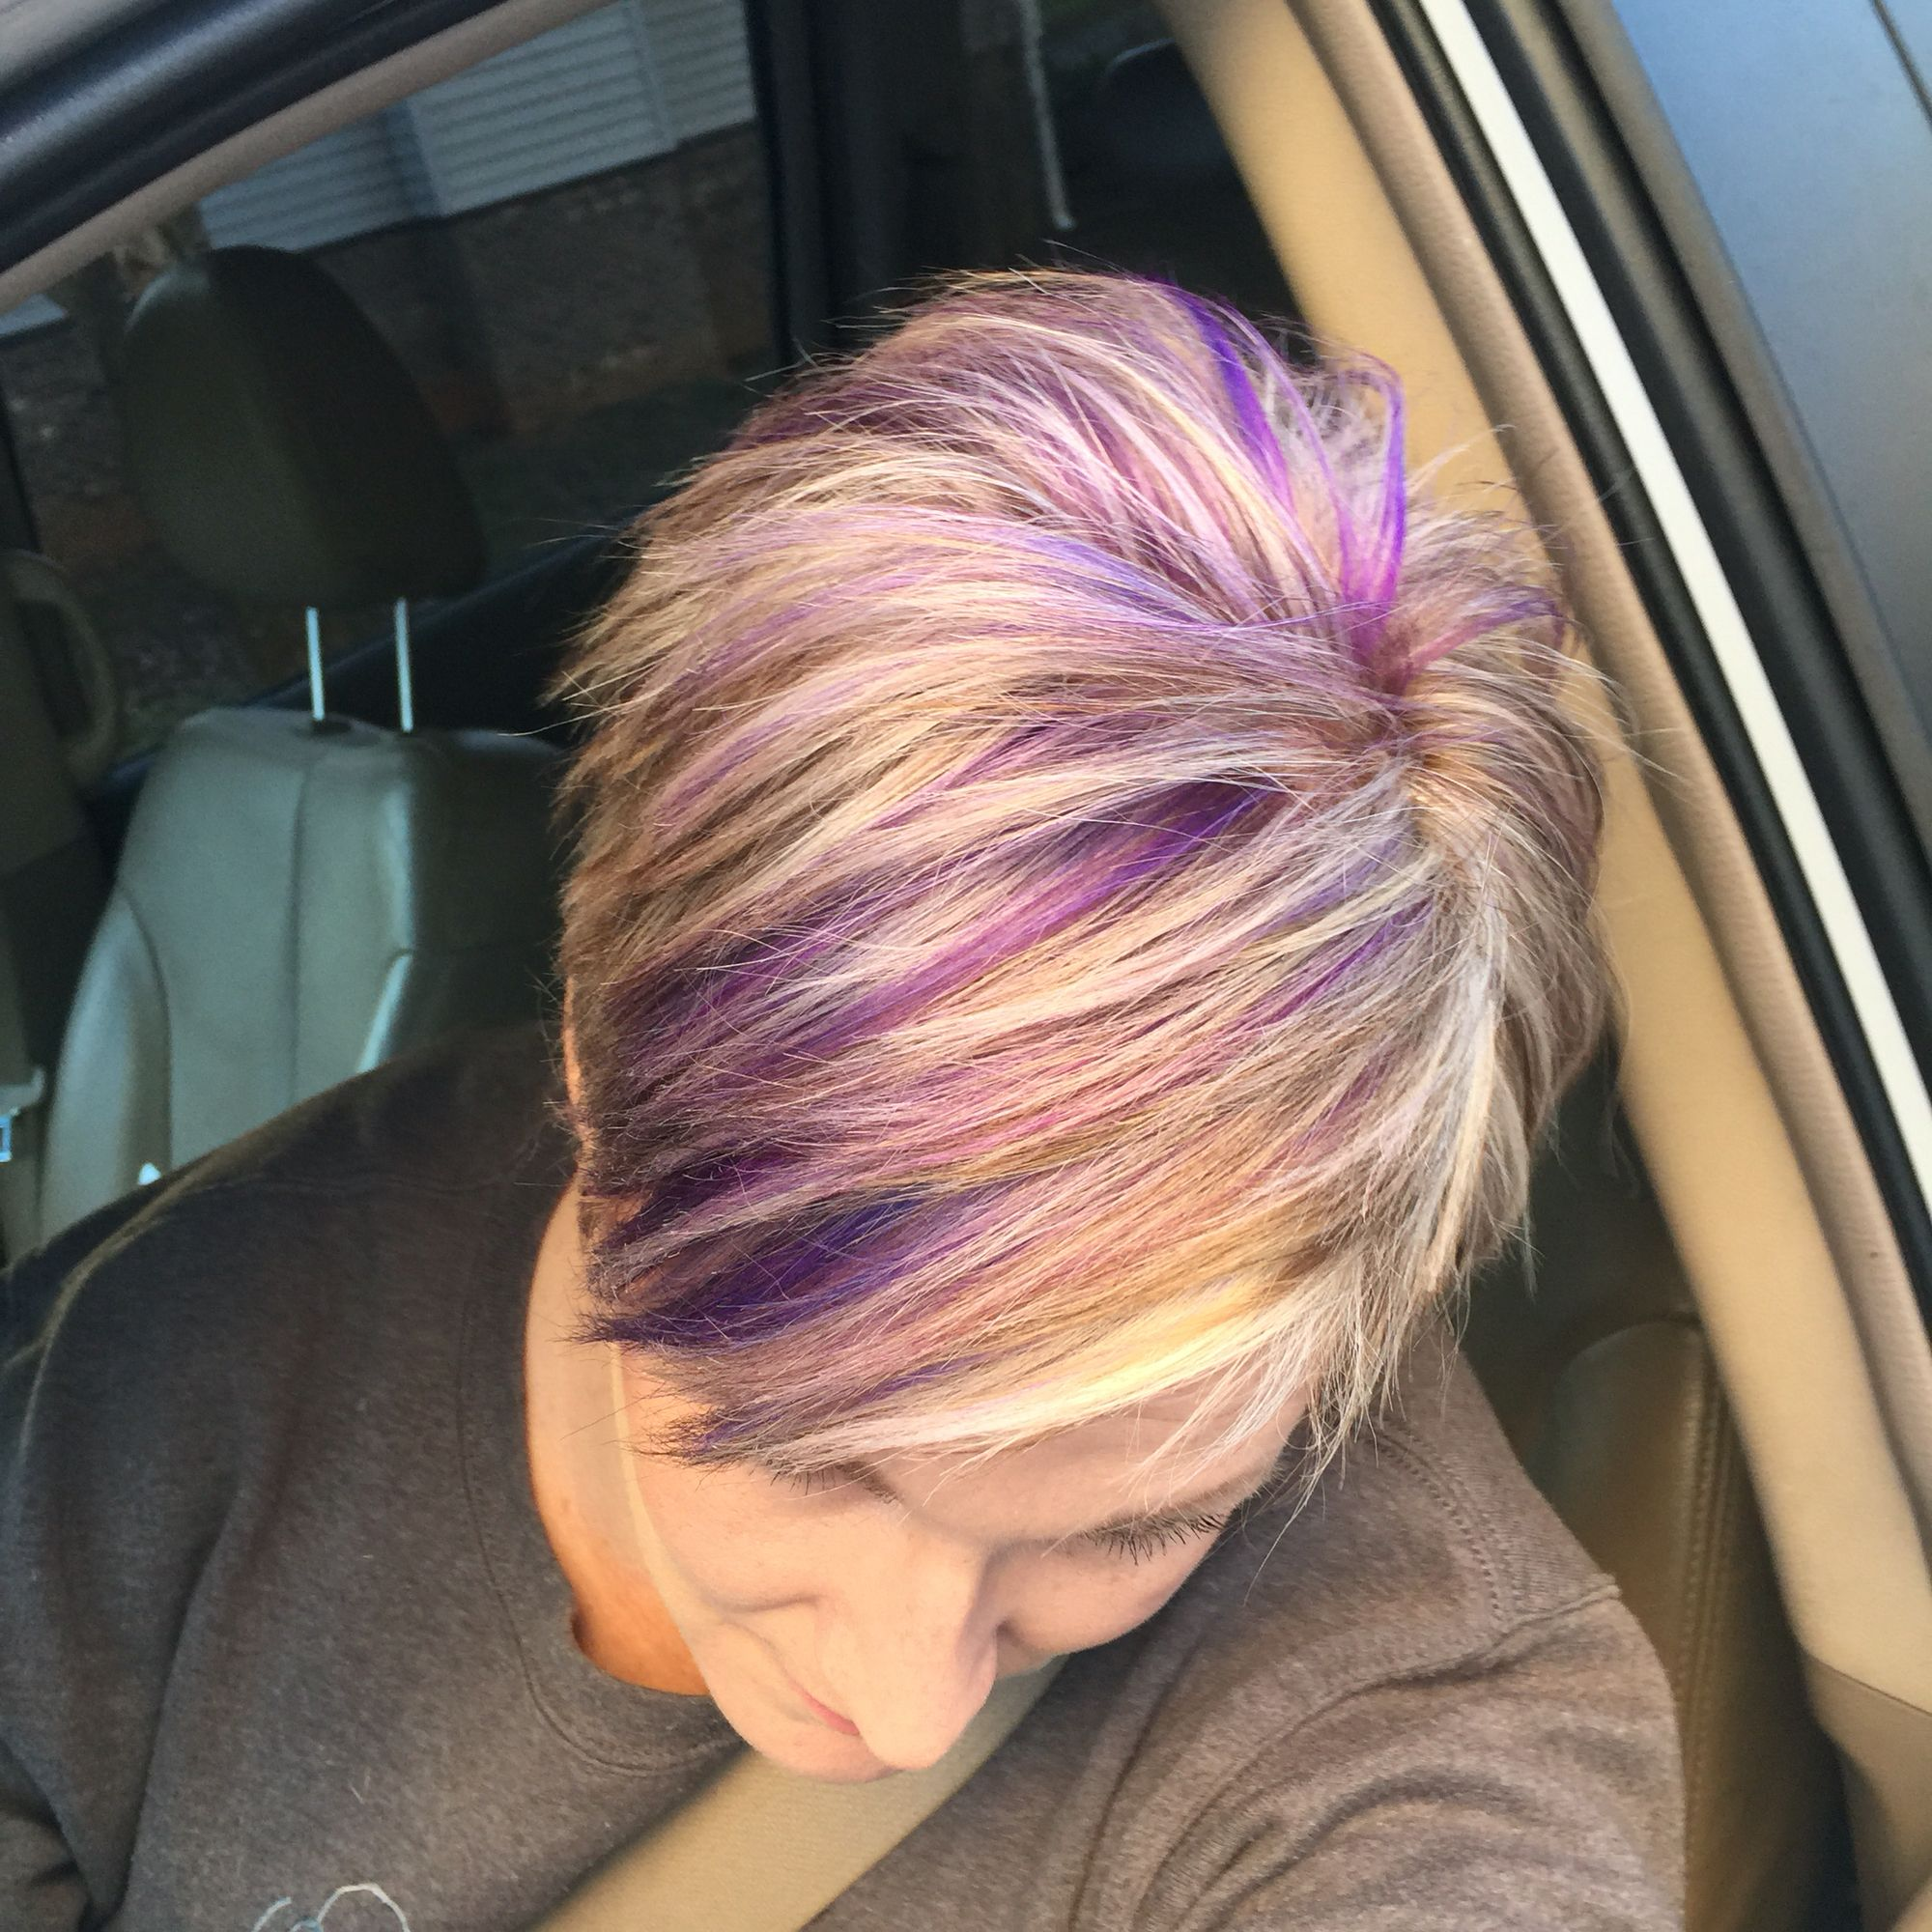 Blonde Pixie Haircut With Purple And Fuchsia Highlights Purple Highlights Blonde Hair Hair Color Crazy Blonde Hair With Highlights